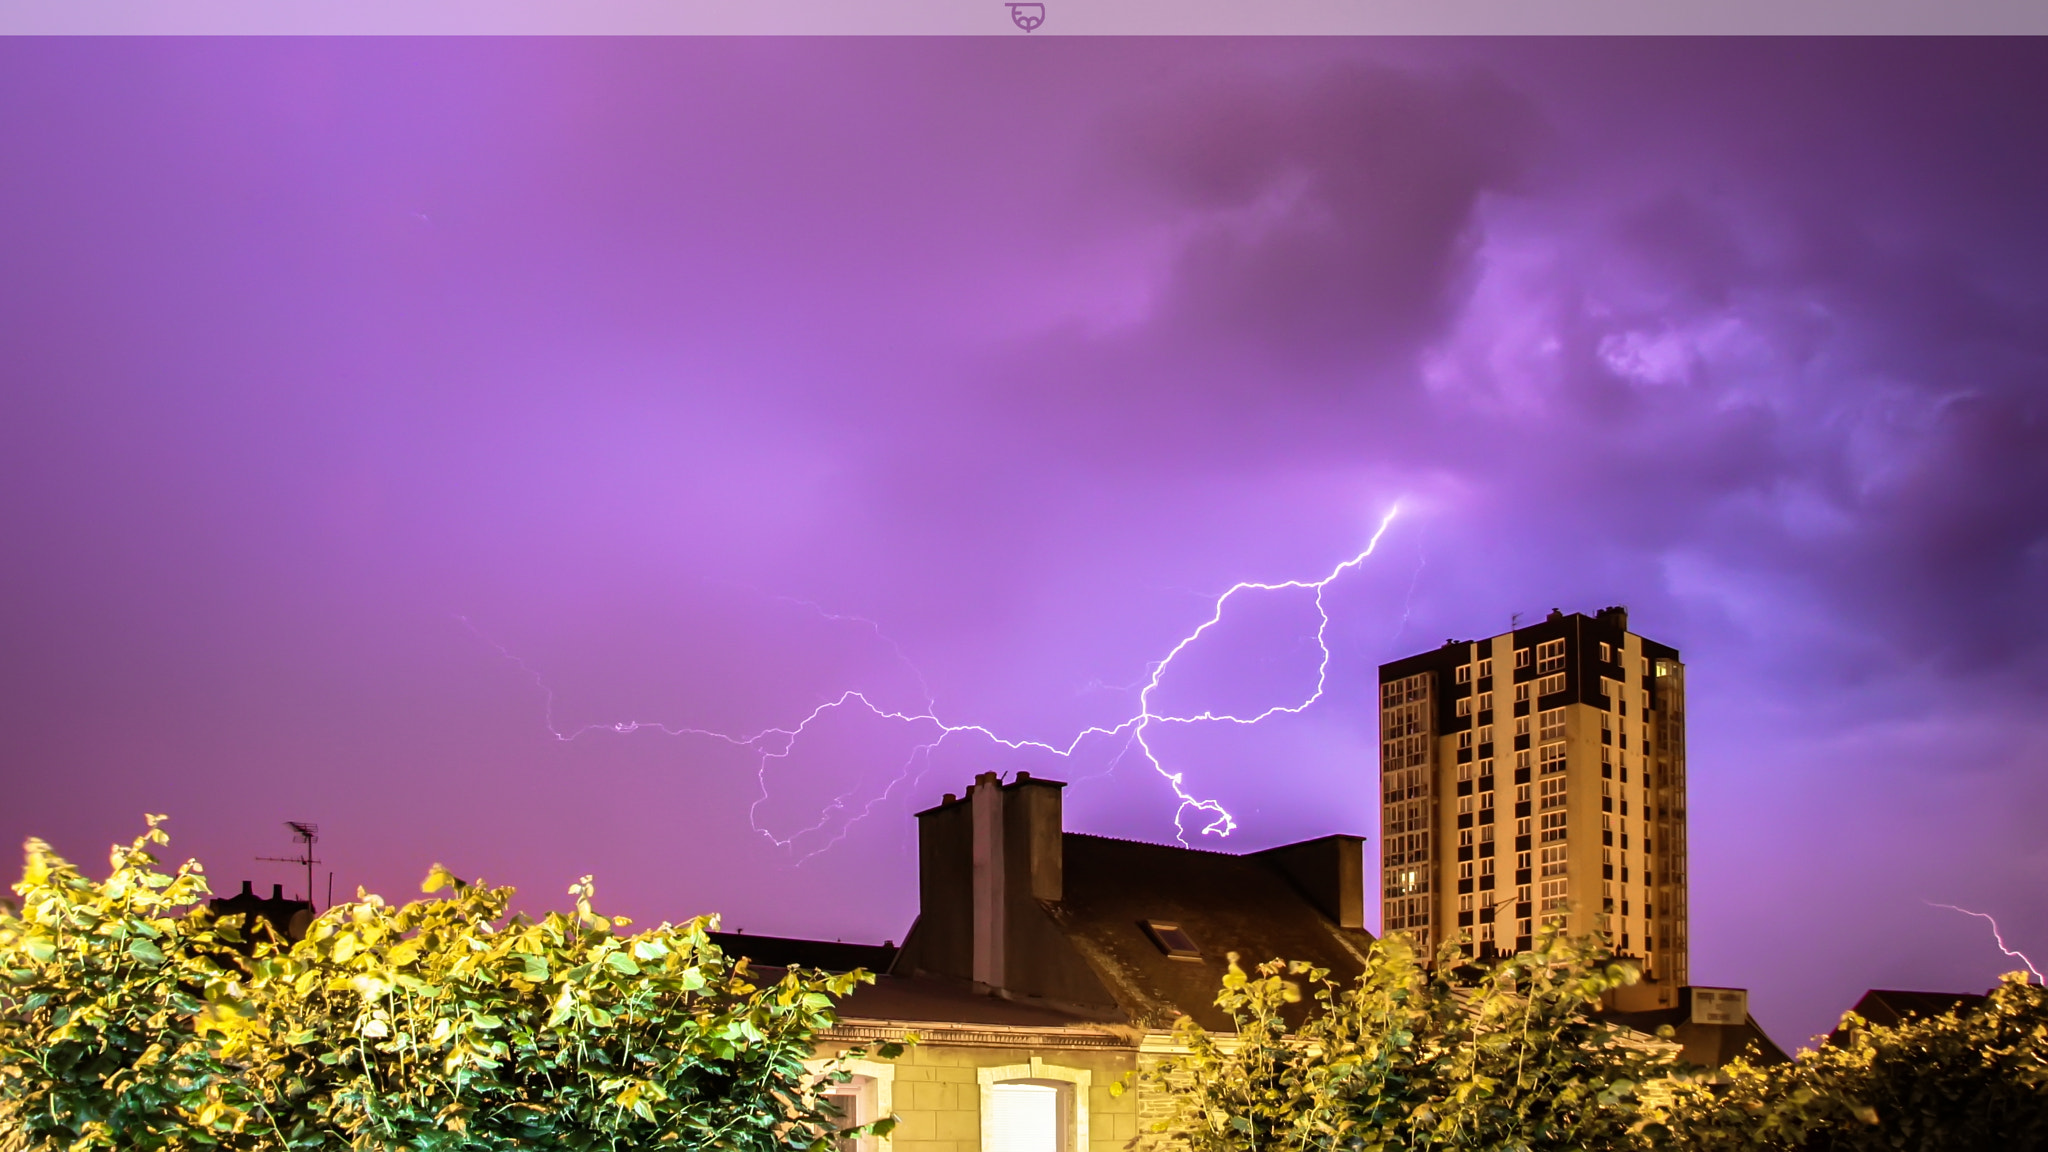 Photograph | Cherbourg under lightning | by Thomas MARIE on 500px